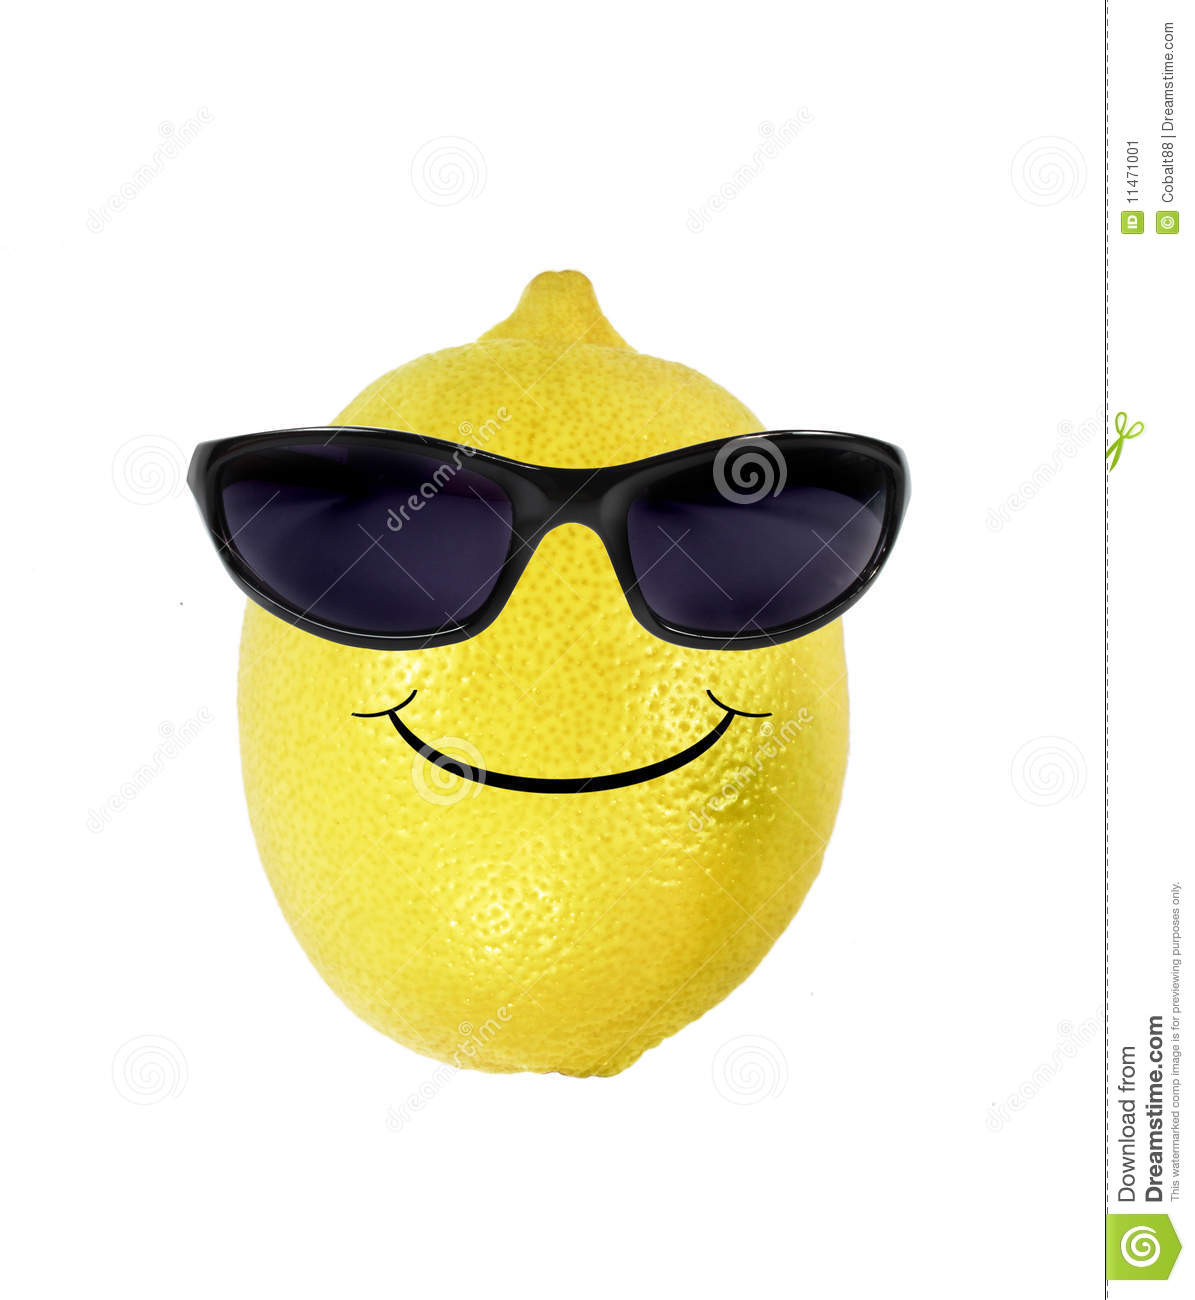 More similar stock images of ` Funny lemon in sunglasses `